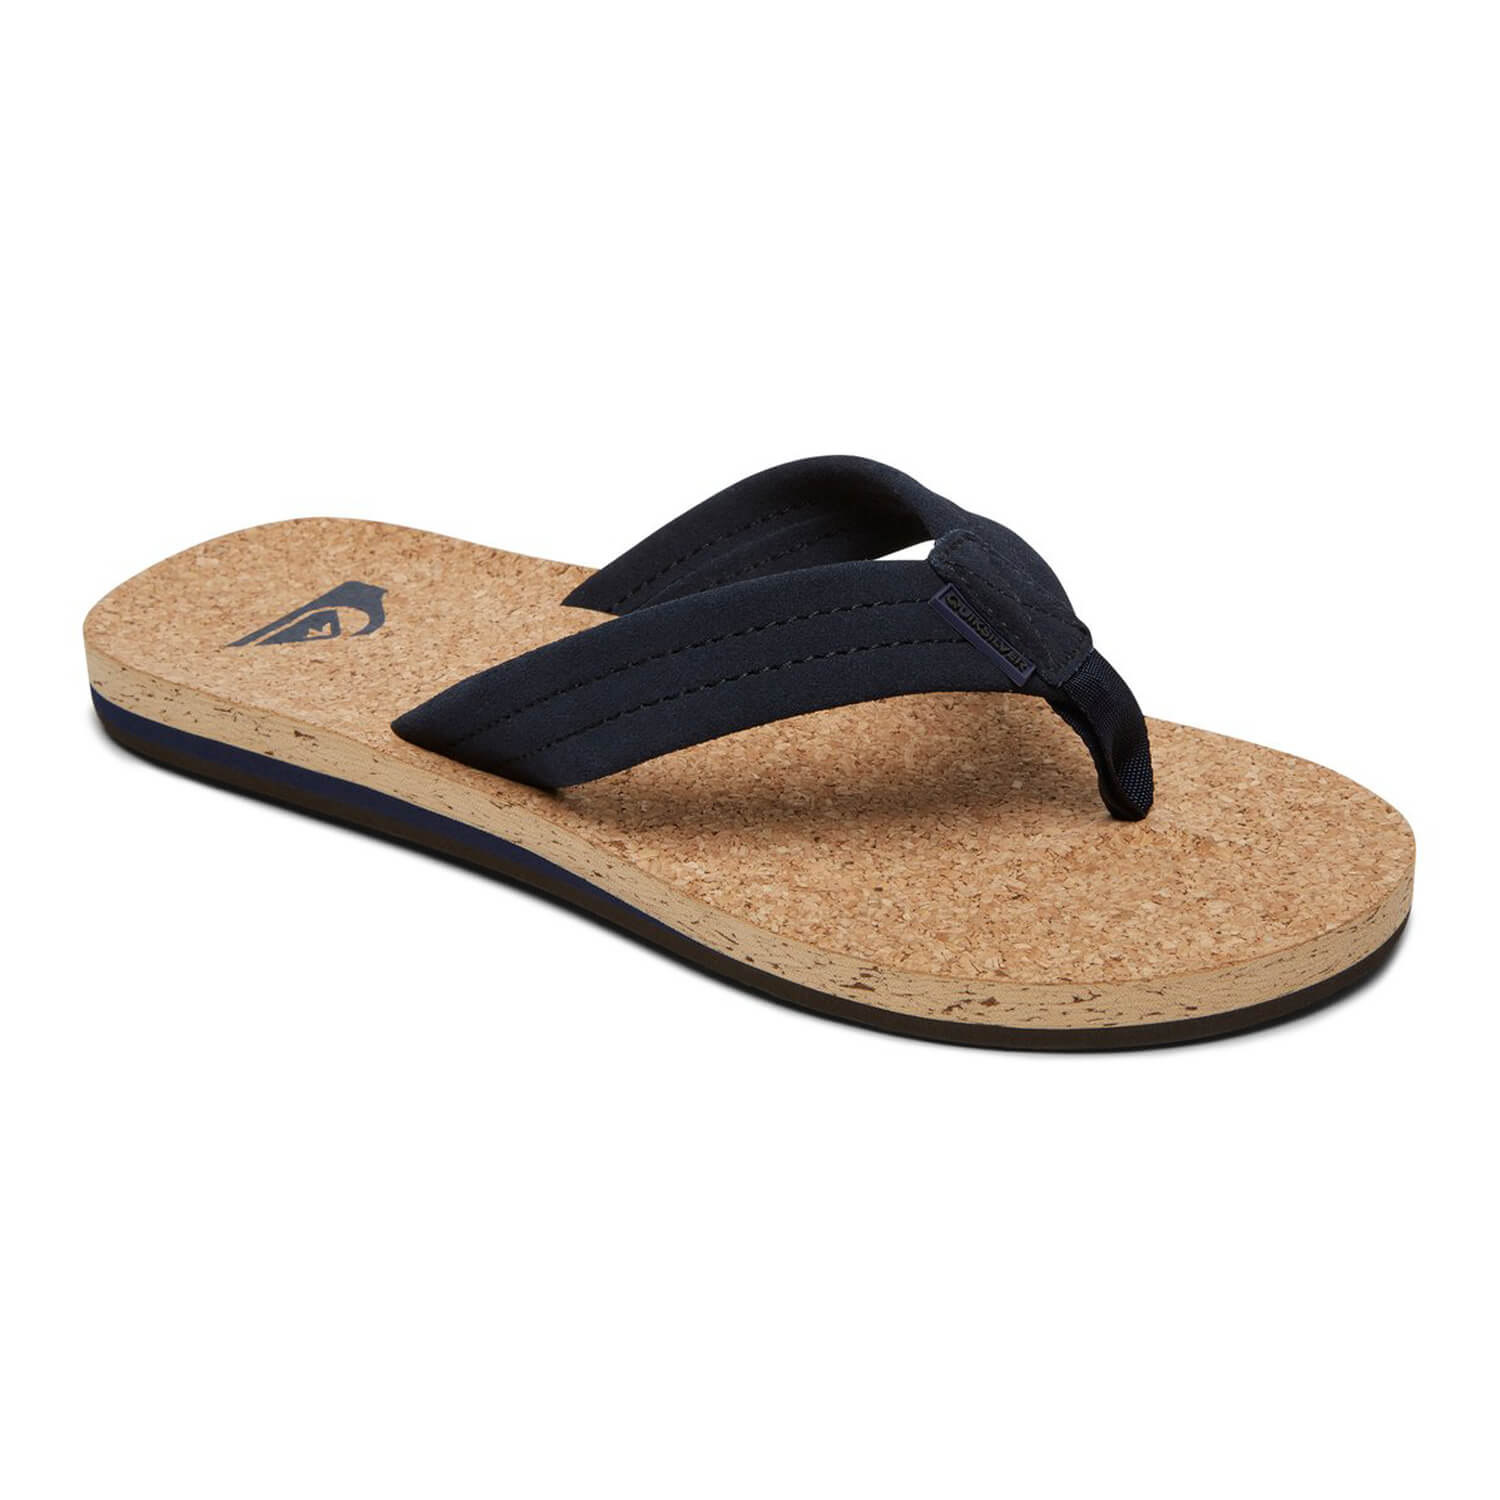 quiksilver carver cork flip flops herren sandalen mit kork fu bett drop. Black Bedroom Furniture Sets. Home Design Ideas